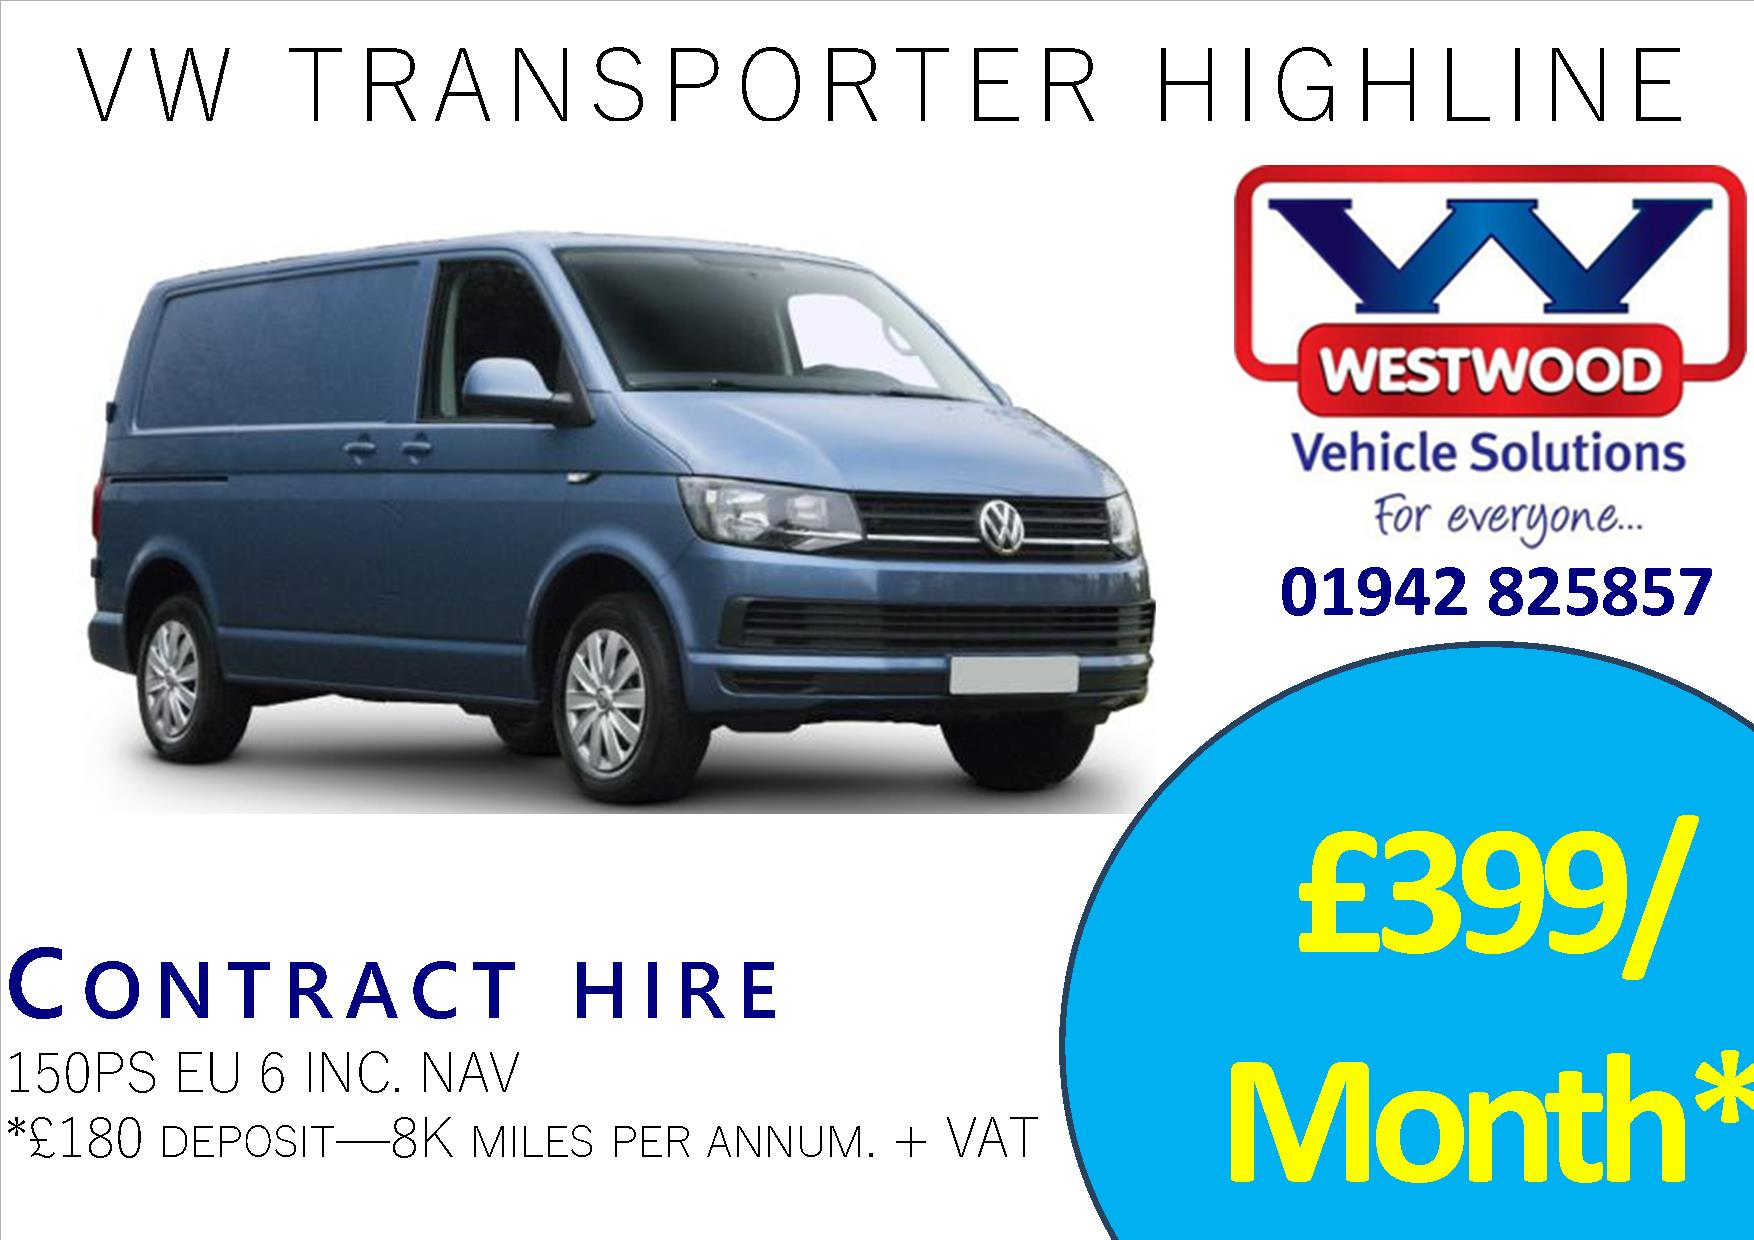 VW TRANSPORTER ADVERT